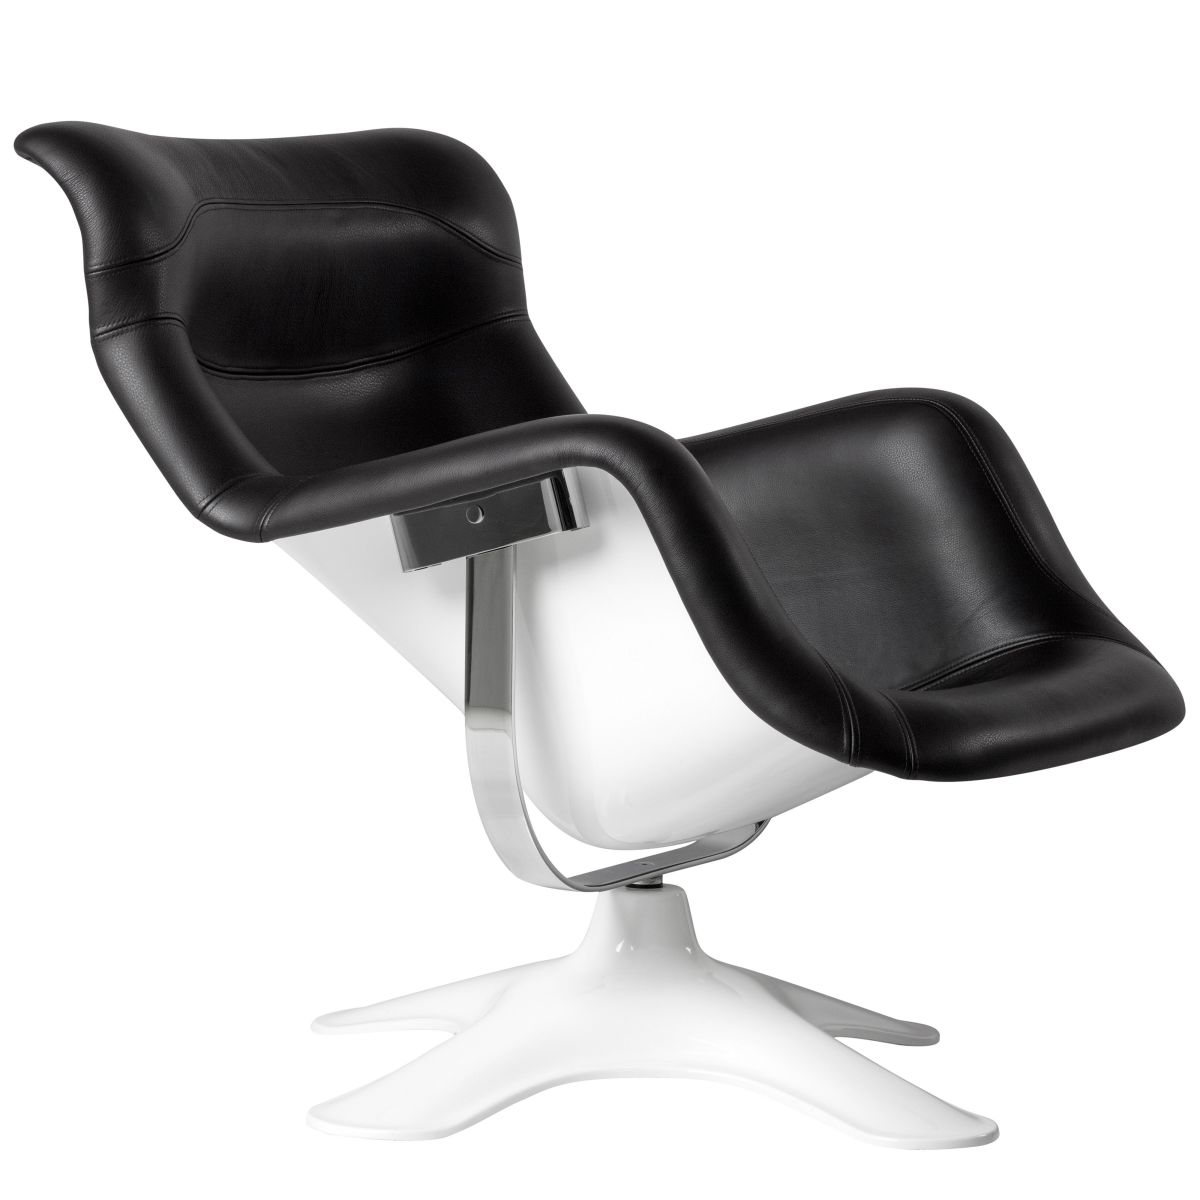 Karuselli-Lounge-Chair-Black-Leather_Web-1977277